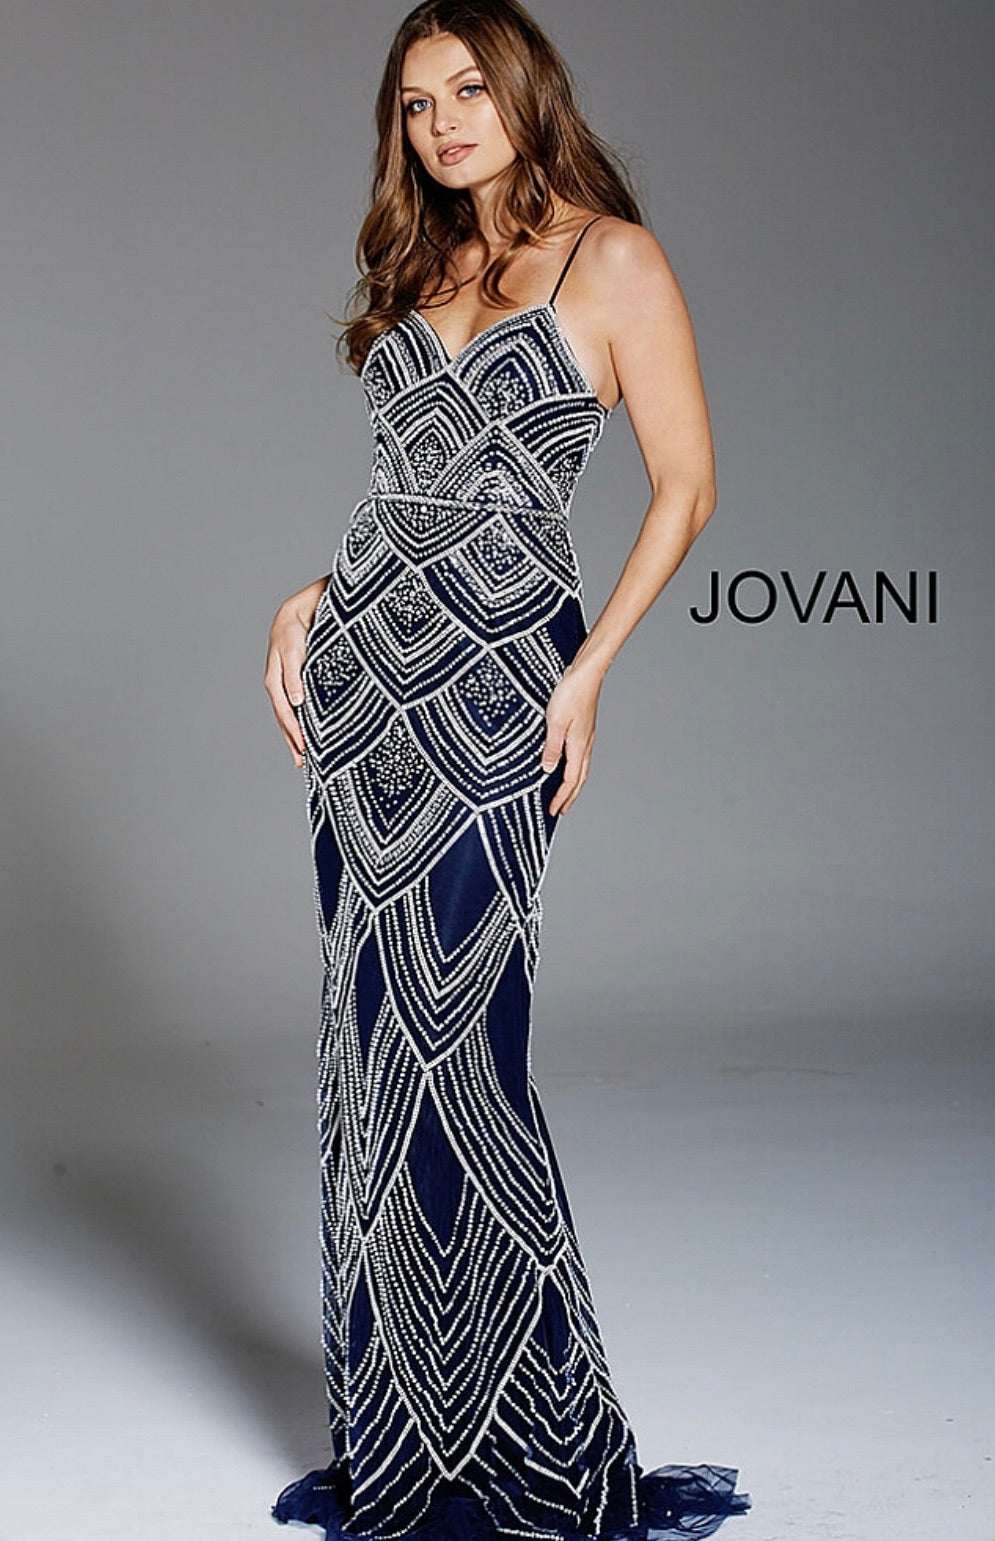 JOVANI 60653 Scallop Motif Beaded Sheath Dress - CYC Boutique